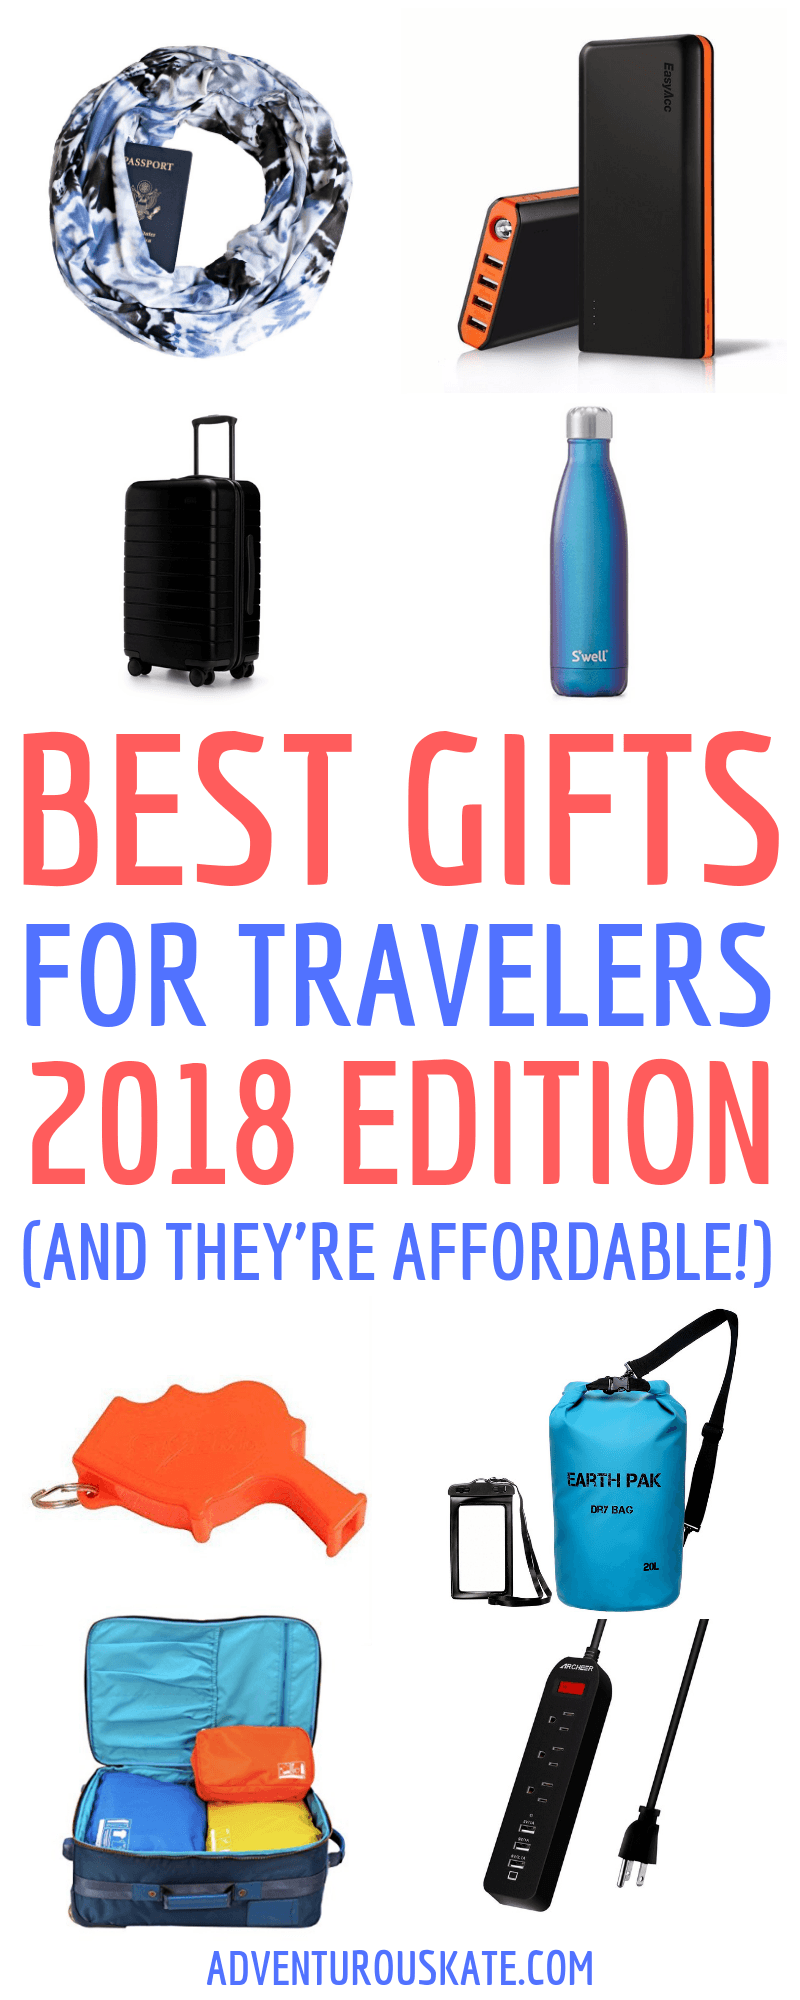 70bbd22f0558 The Best Gifts for Travelers  2018 Edition - Adventurous Kate ...